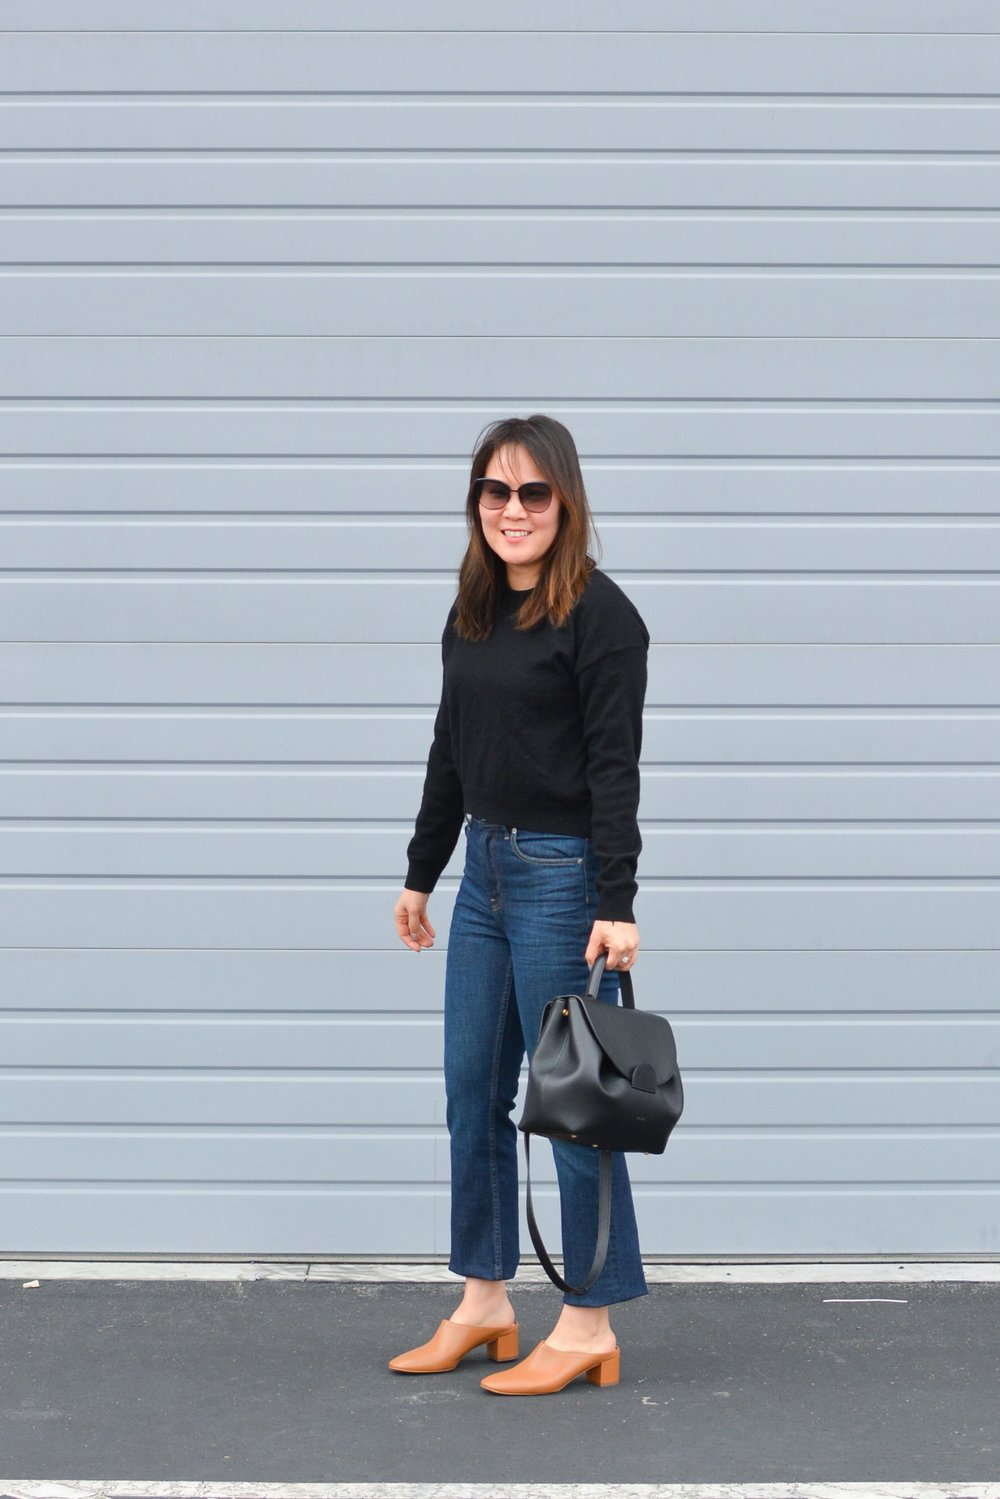 Everlane Review The Kick Crop Jeans (2 of 3)-min.jpg